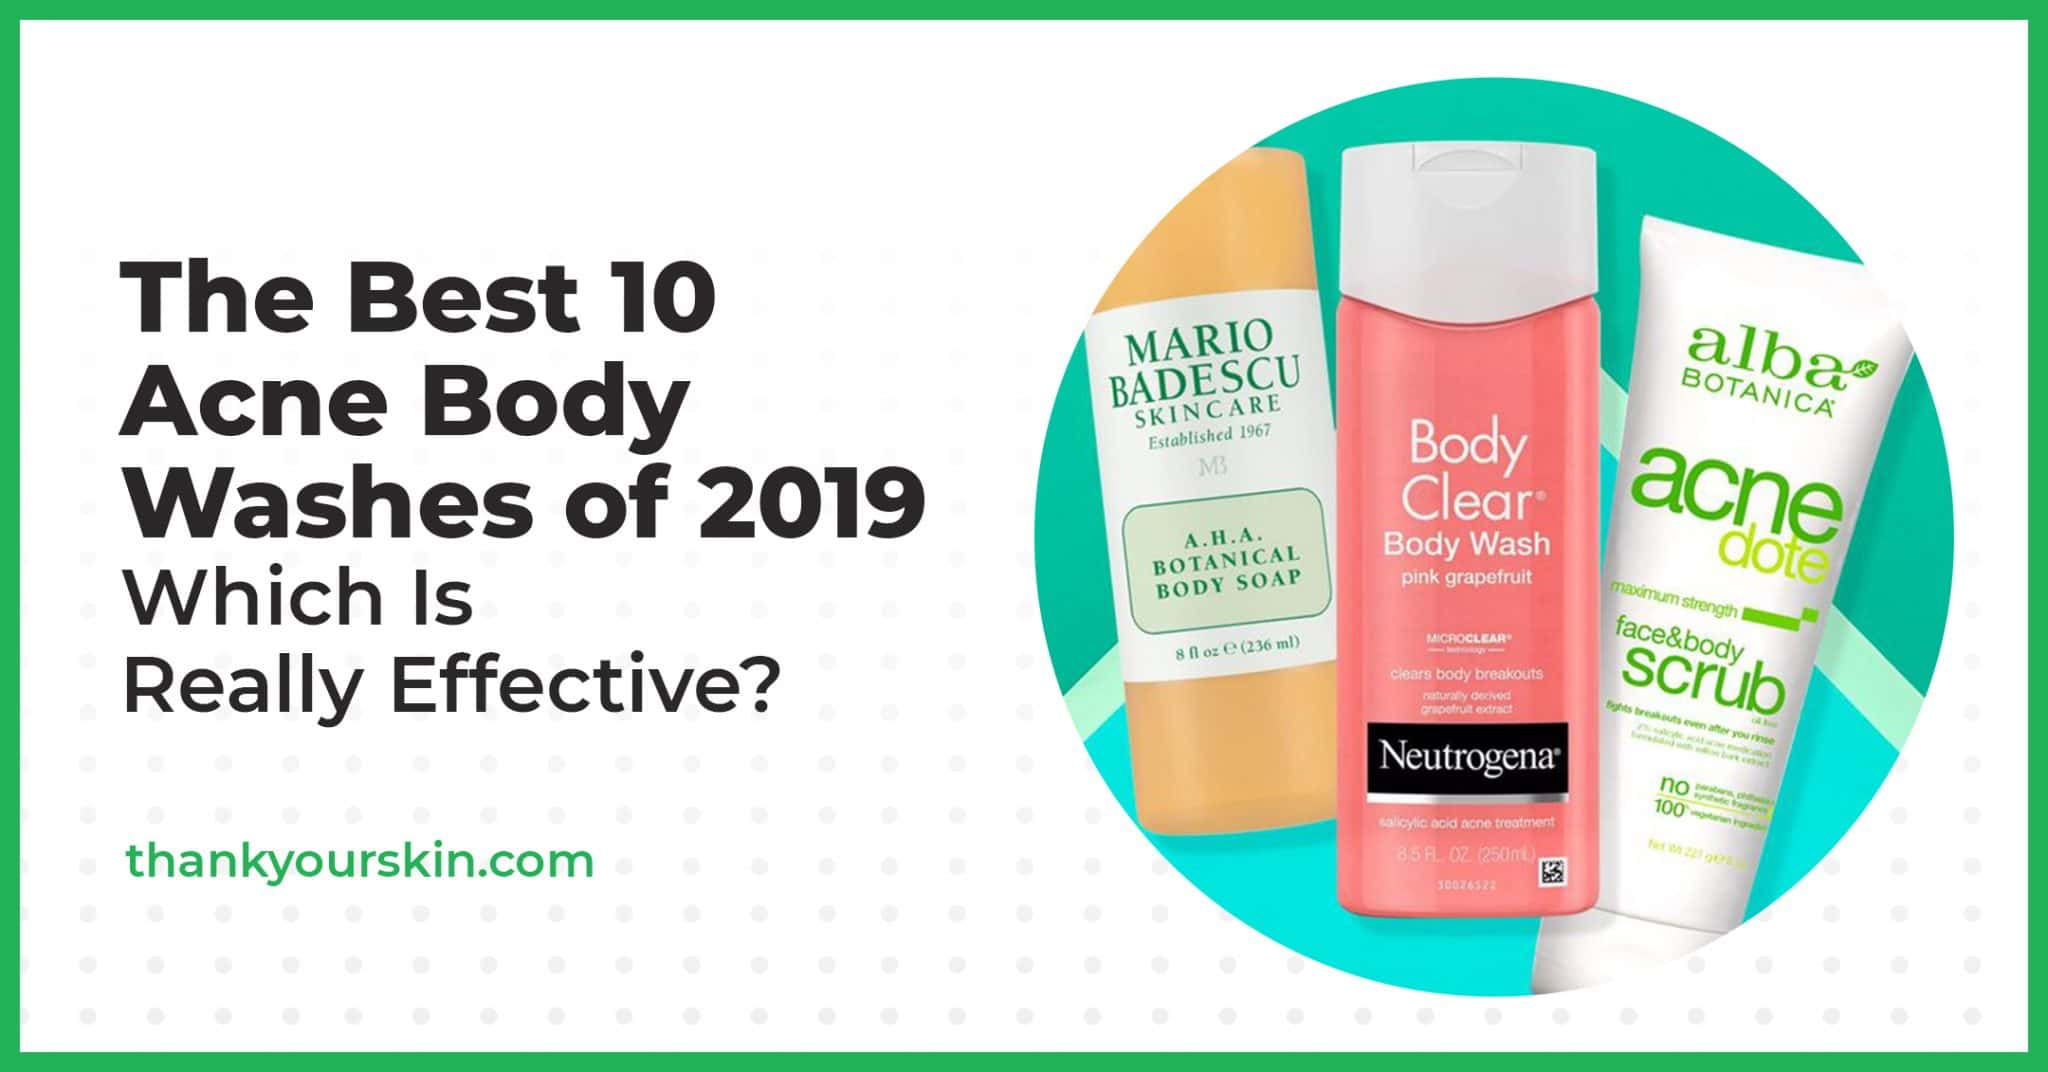 The Best 10 Acne Body Washes of 2021: Which Is Really Effective?